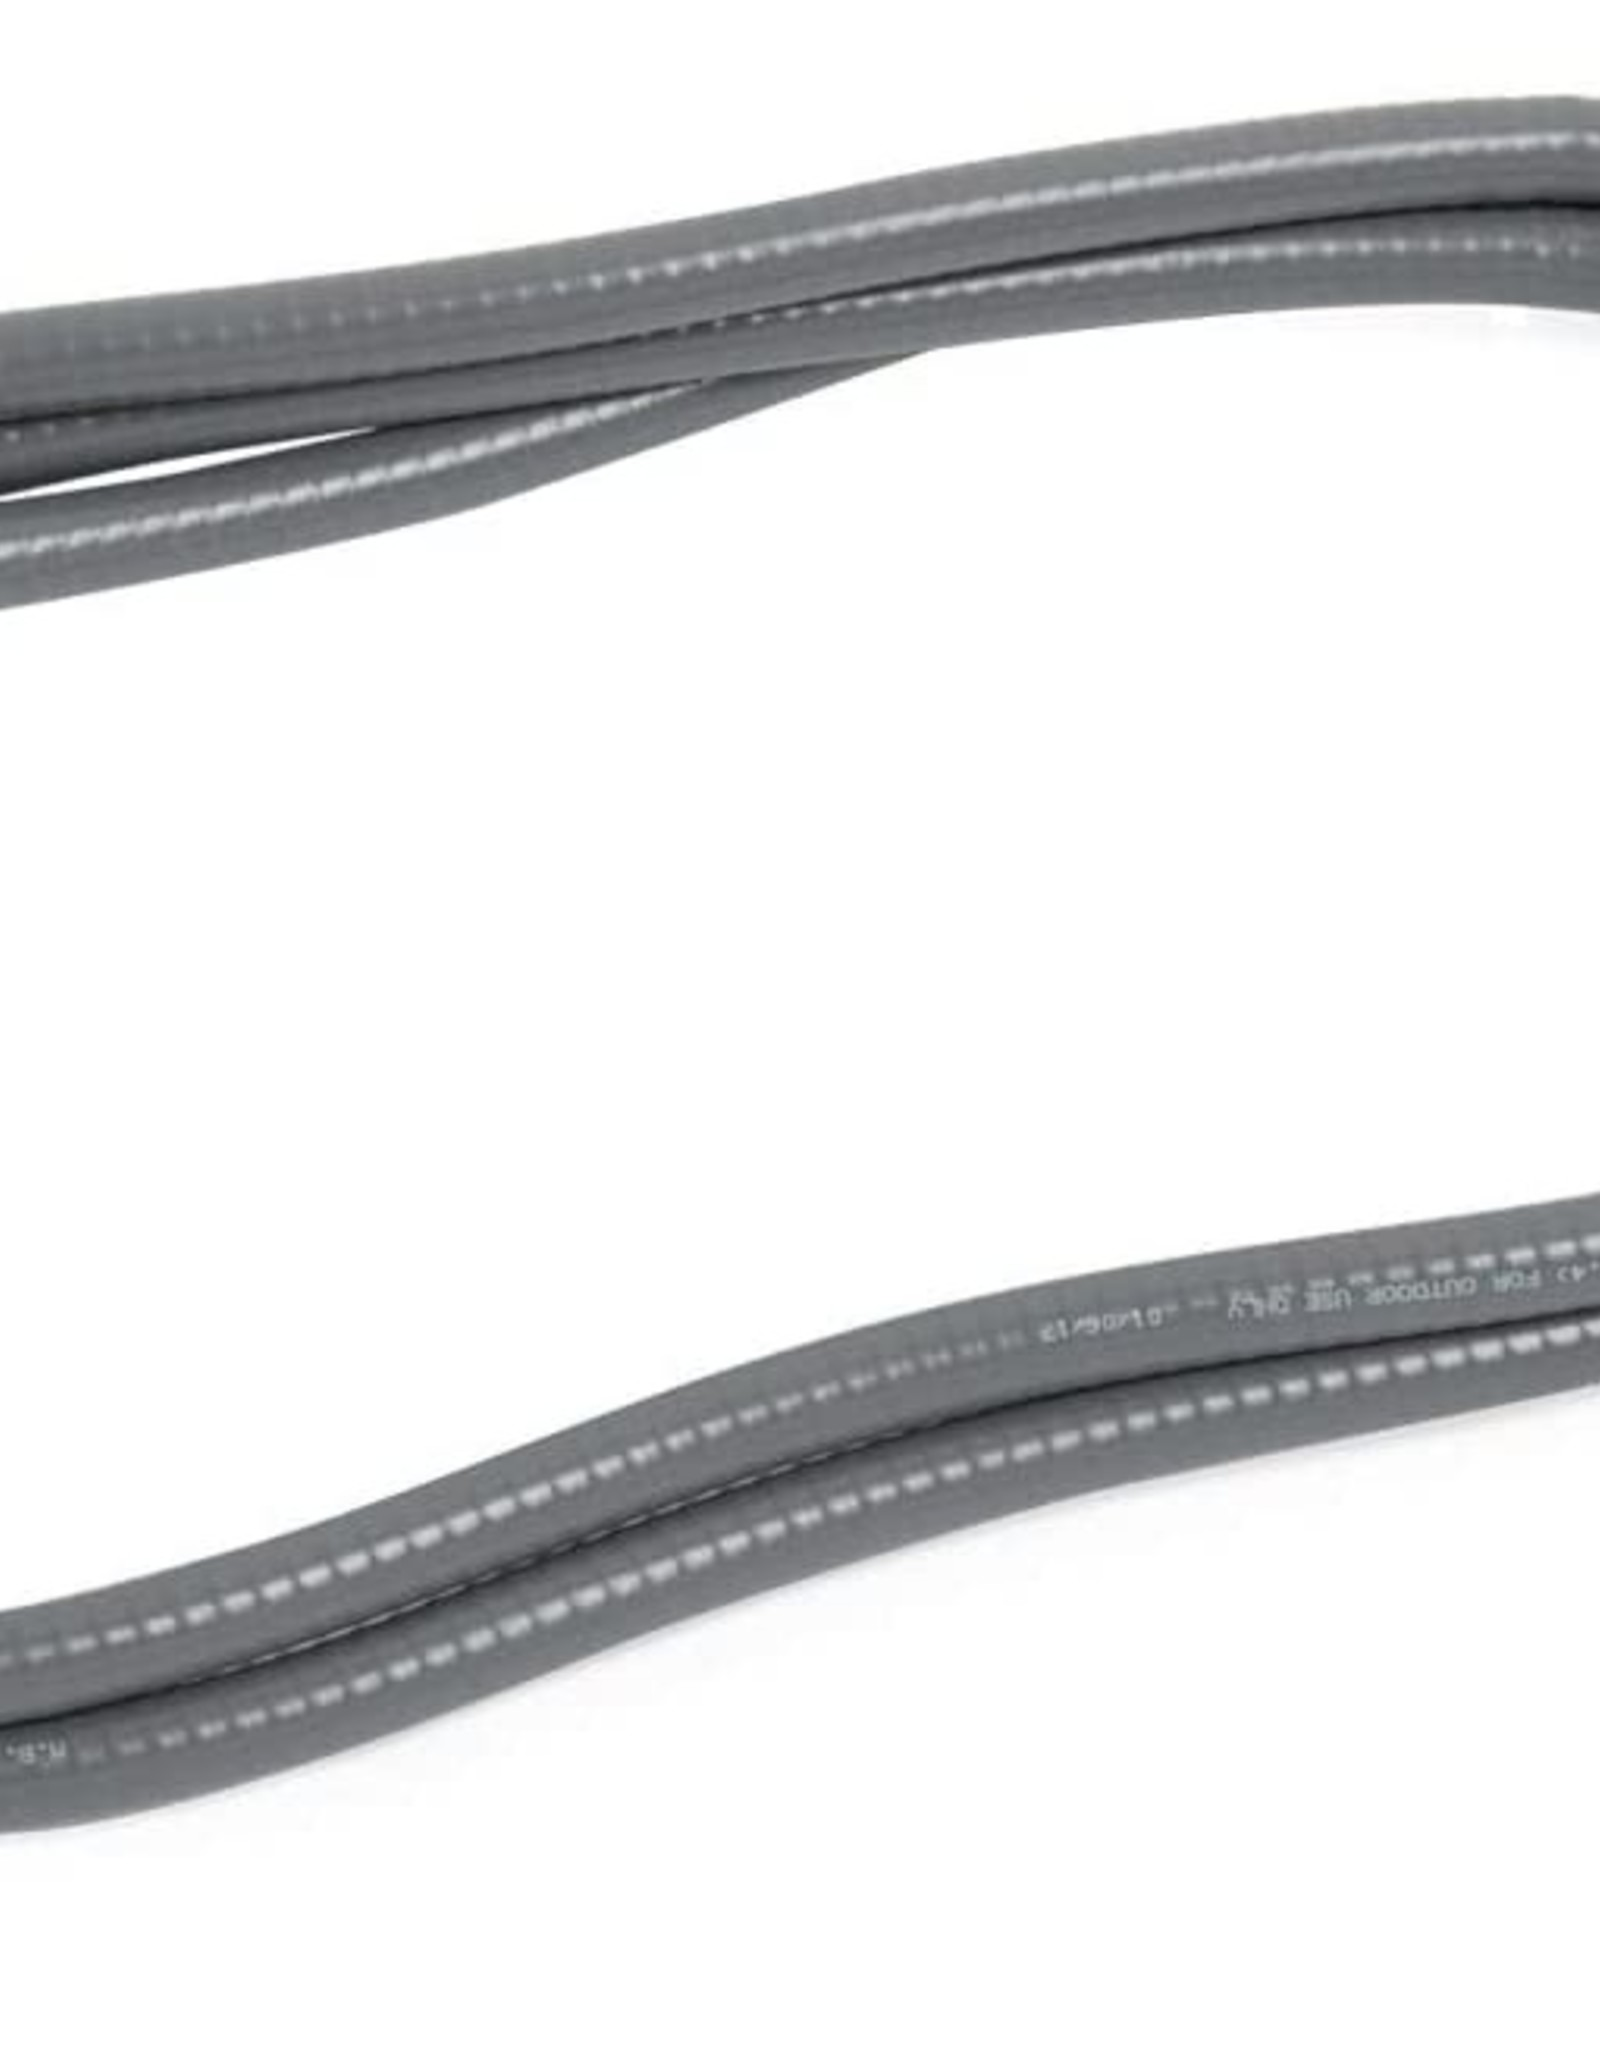 Napoleon Napoleon 10' Natural Gas Hose Quick Connect with 3/8 Flare Connection